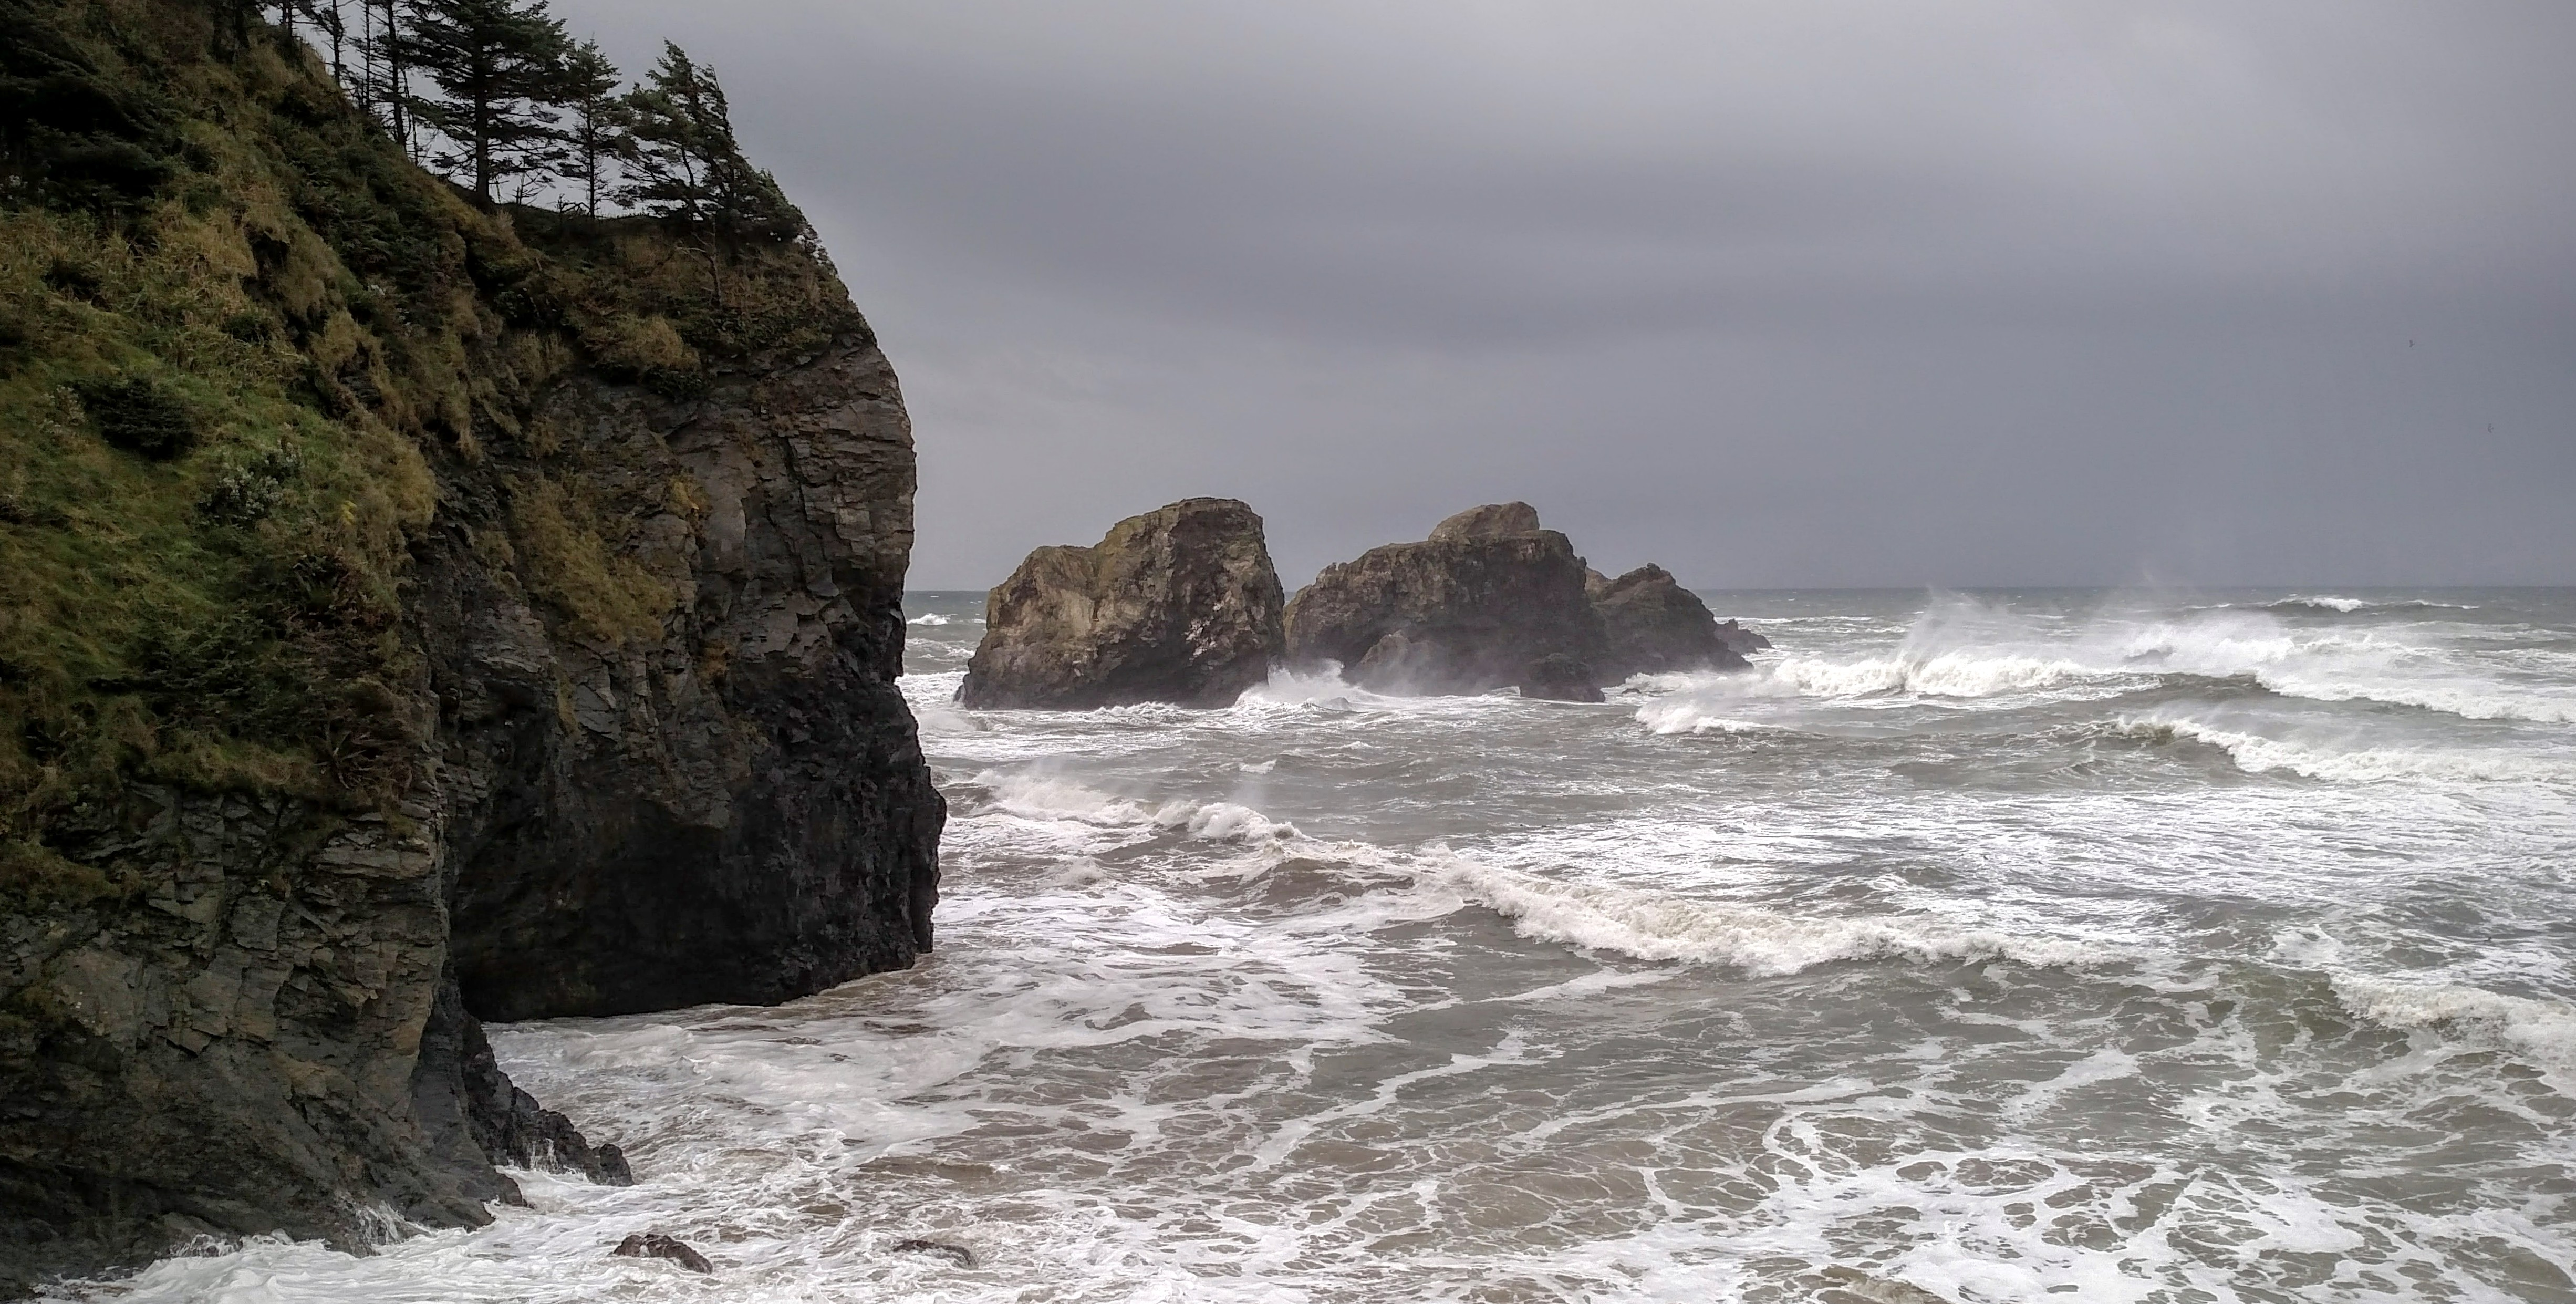 King Tide Event at Ecola